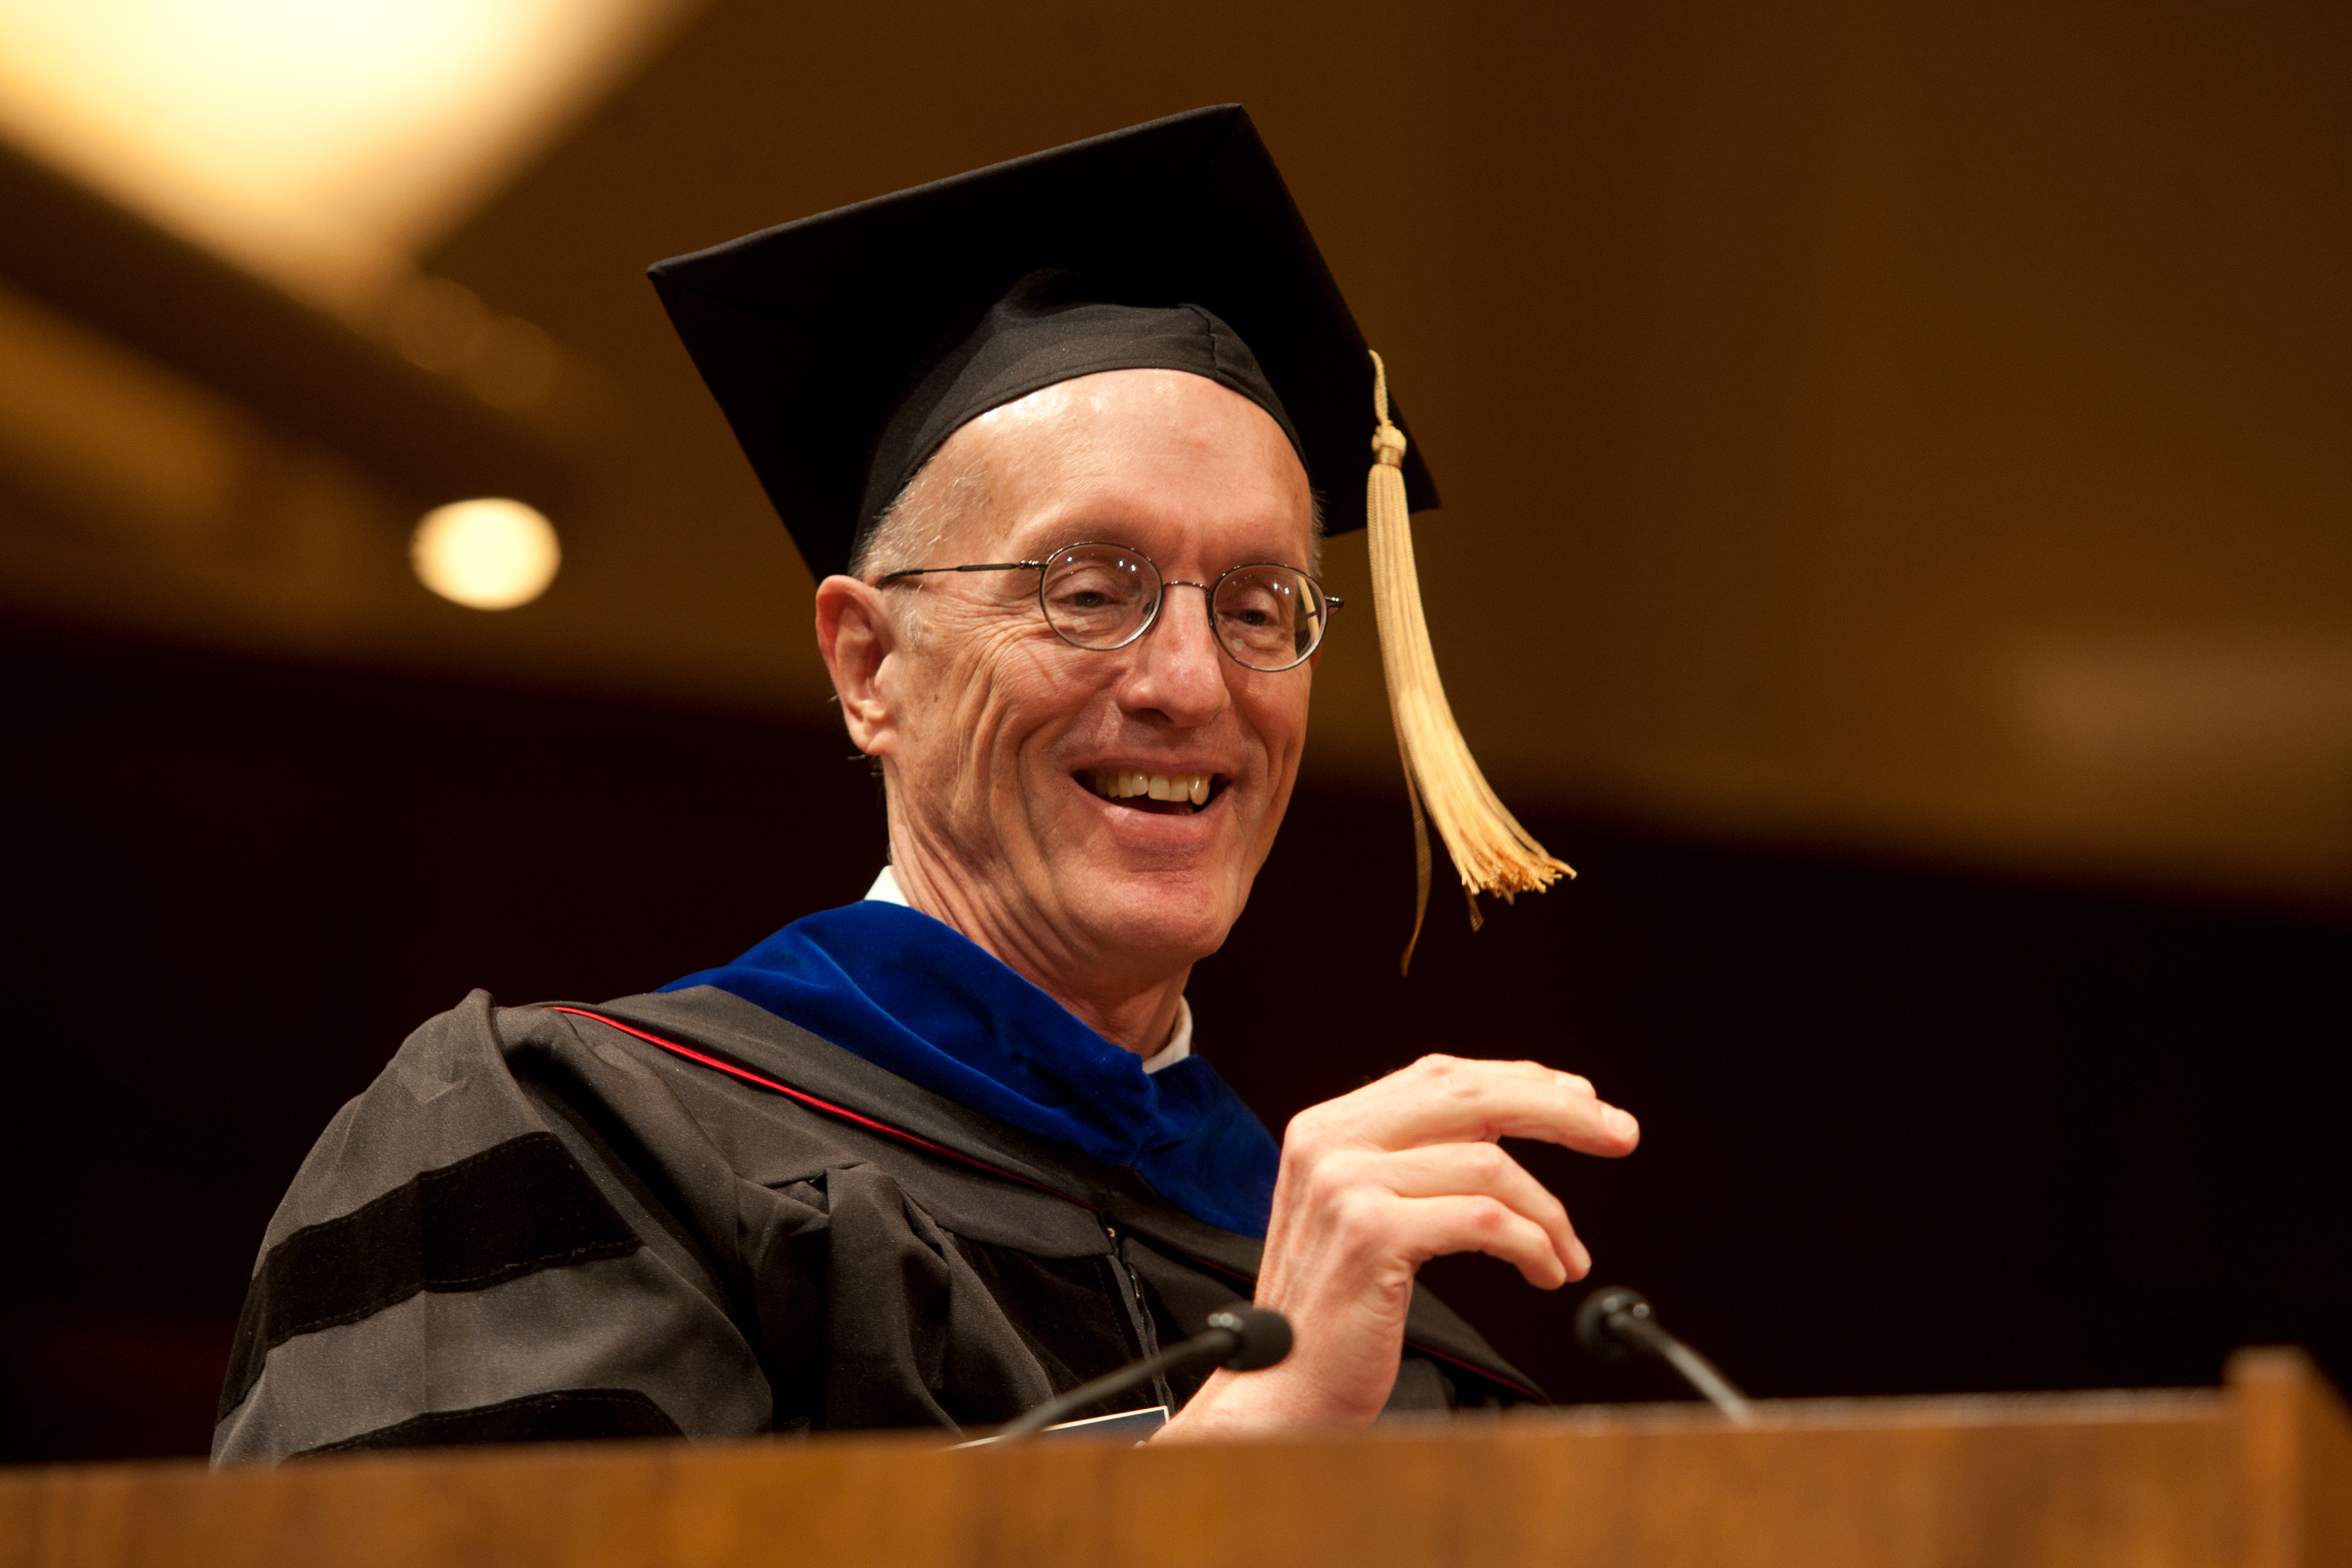 Peter Sargent, PhD, served as the Master of Ceremonies at the commencement. He is a professor and associate dean for Academic Affairs in the School of Dentistry.